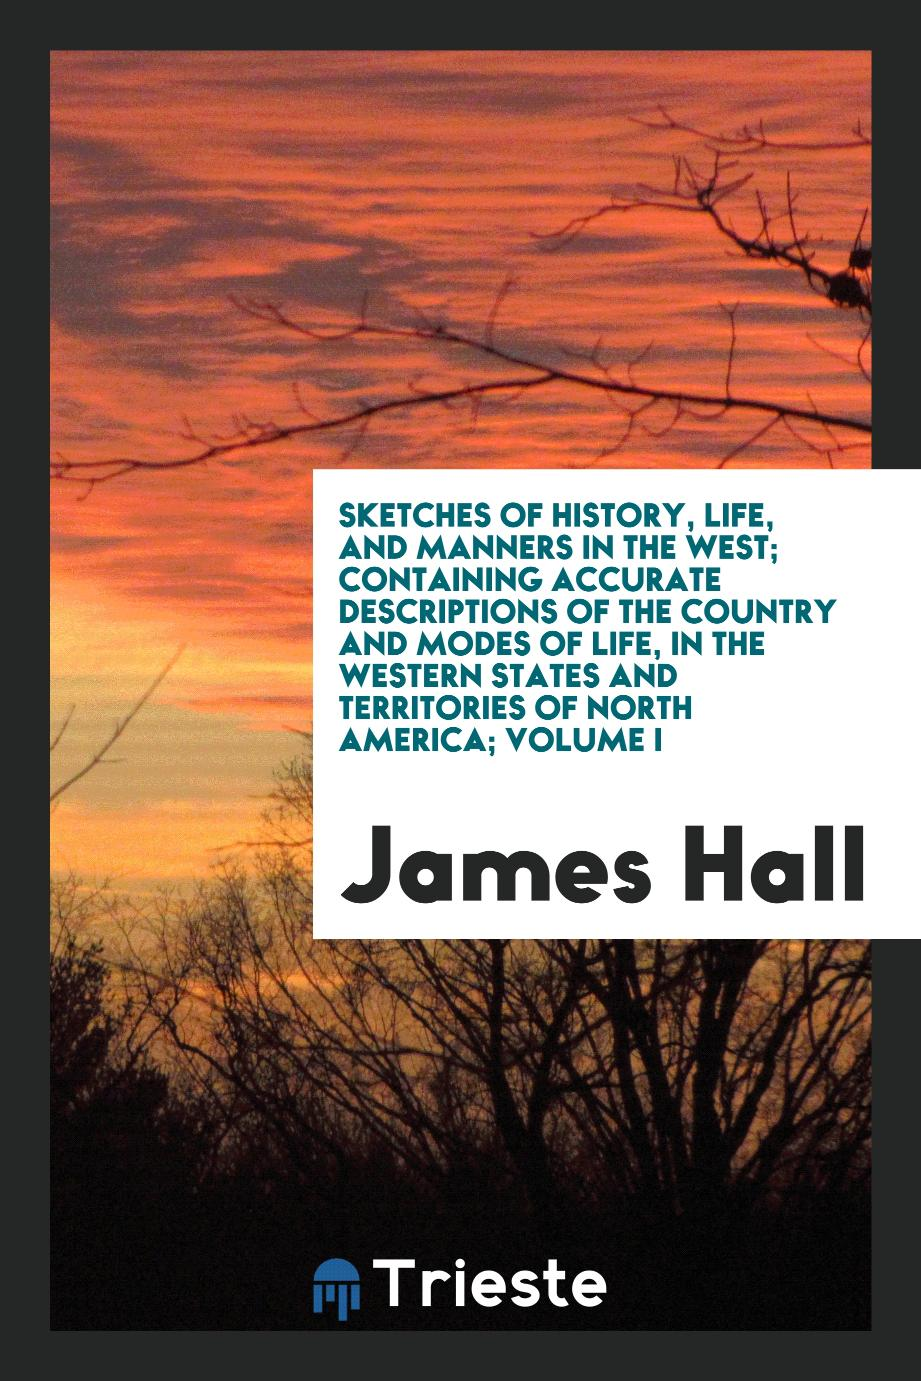 Sketches of history, life, and manners in the West; containing accurate descriptions of the country and modes of life, in the western states and territories of North America; Volume I